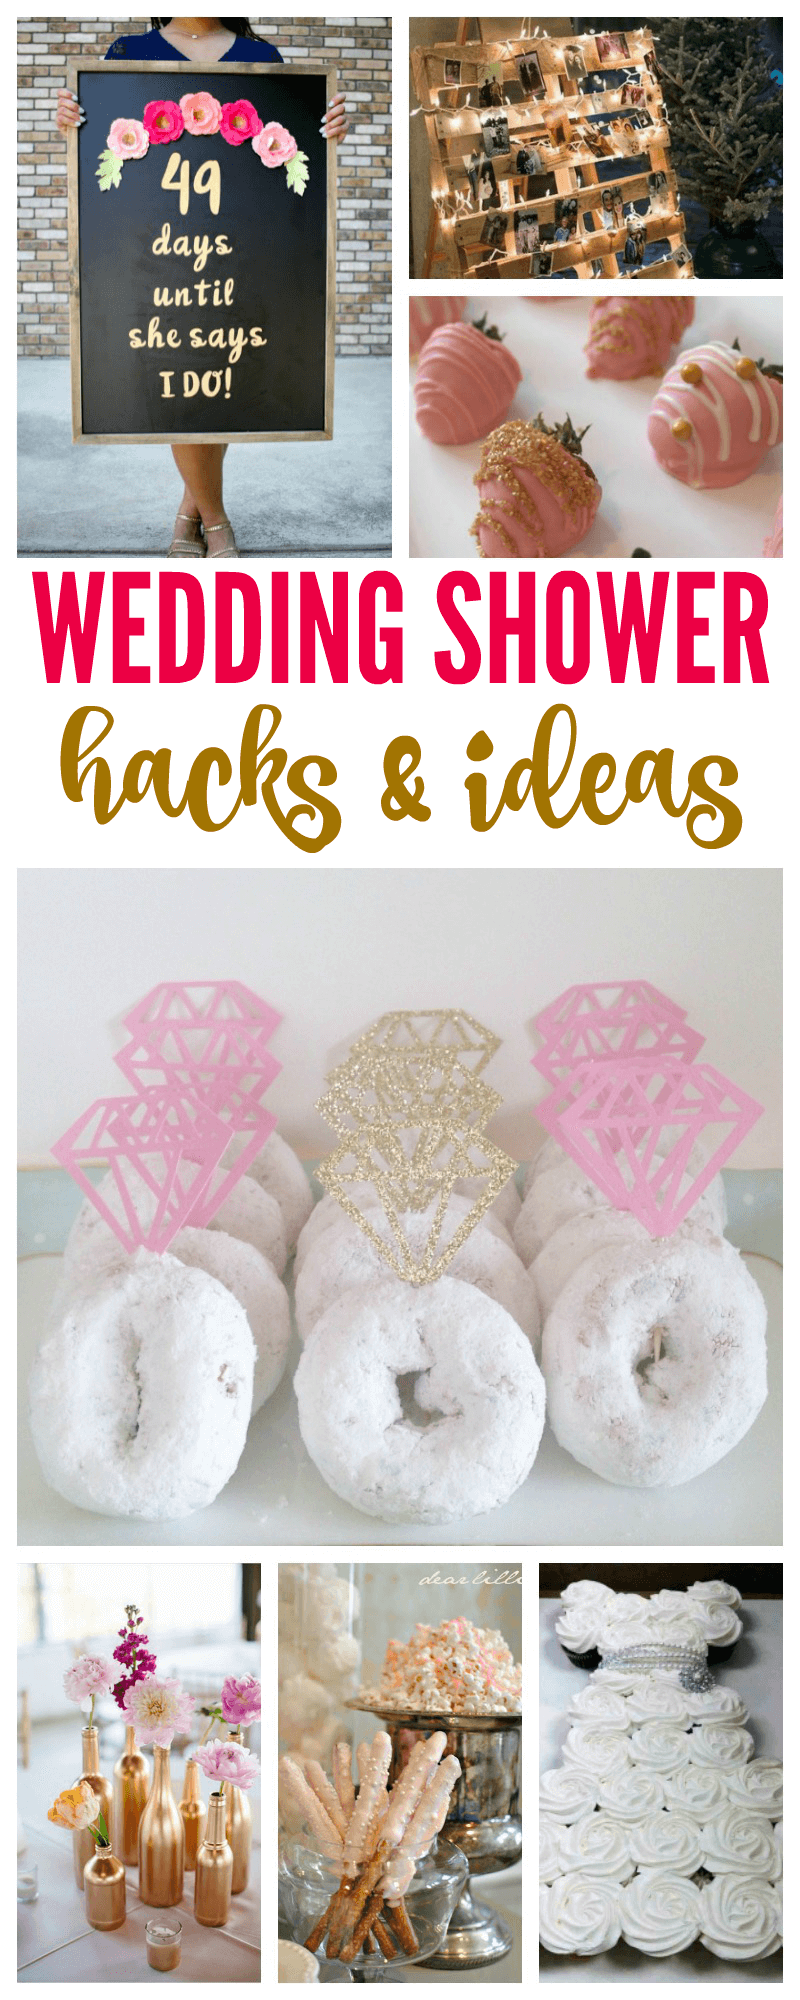 Wedding Shower Hacks & Ideas! How to throw the best bridal shower for a bride to be! #bachelorettepartyideas